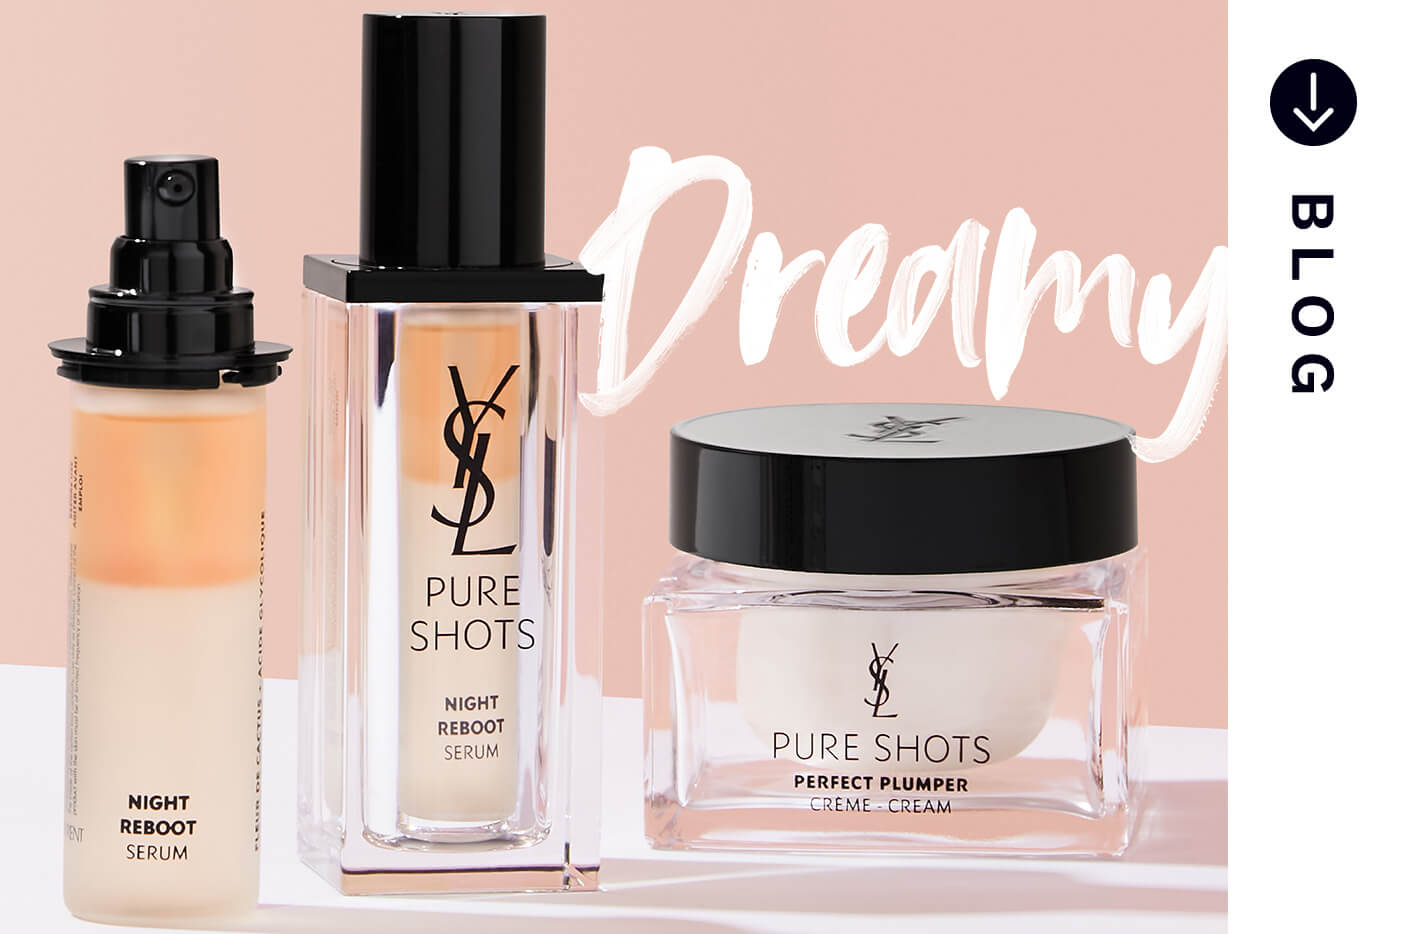 Discover a premium beauty routine from YSL, designed to make you look and feel fantastic